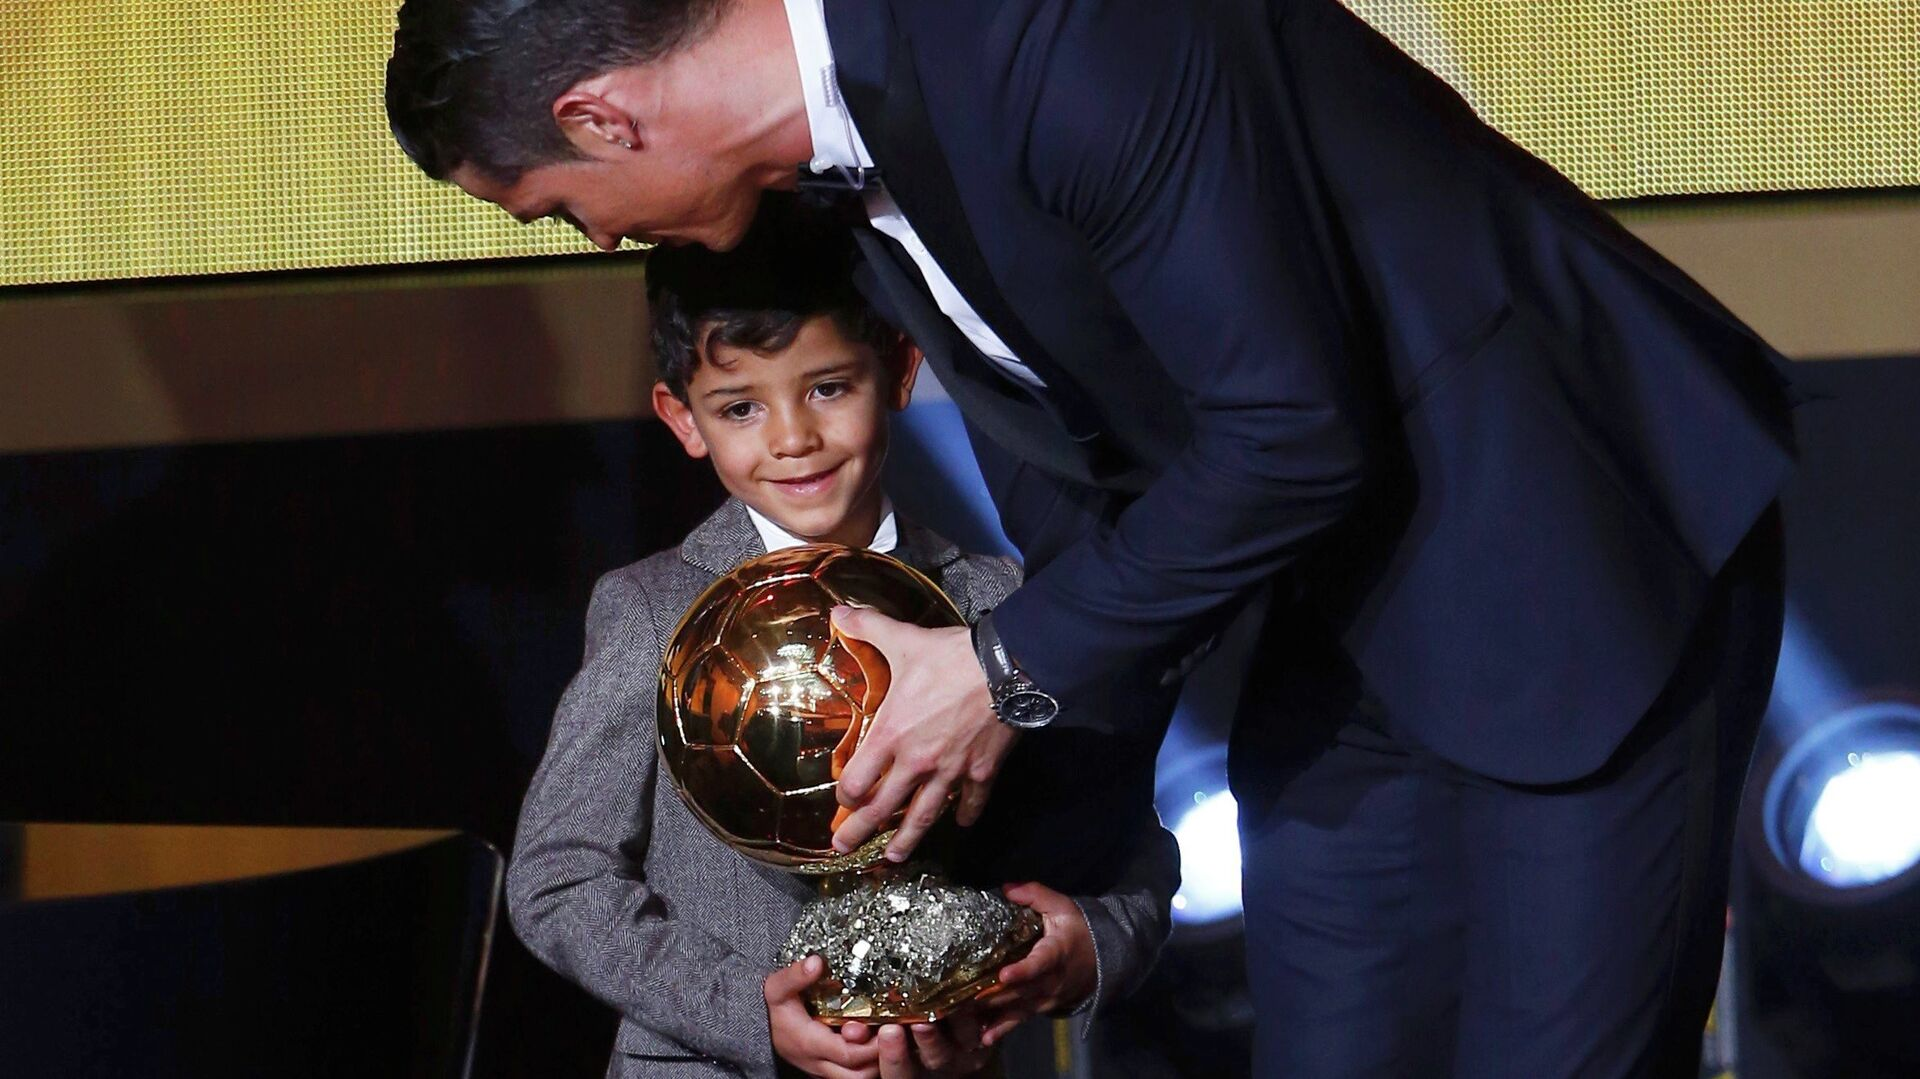 Real Madrid's Cristiano Ronaldo of Portugal, stands with his son Cristiano Ronaldo Jr, after winning the FIFA Ballon d'Or 2014 during the soccer awards ceremony at the Kongresshaus in Zurich January 12, 2015 - Sputnik International, 1920, 22.09.2021